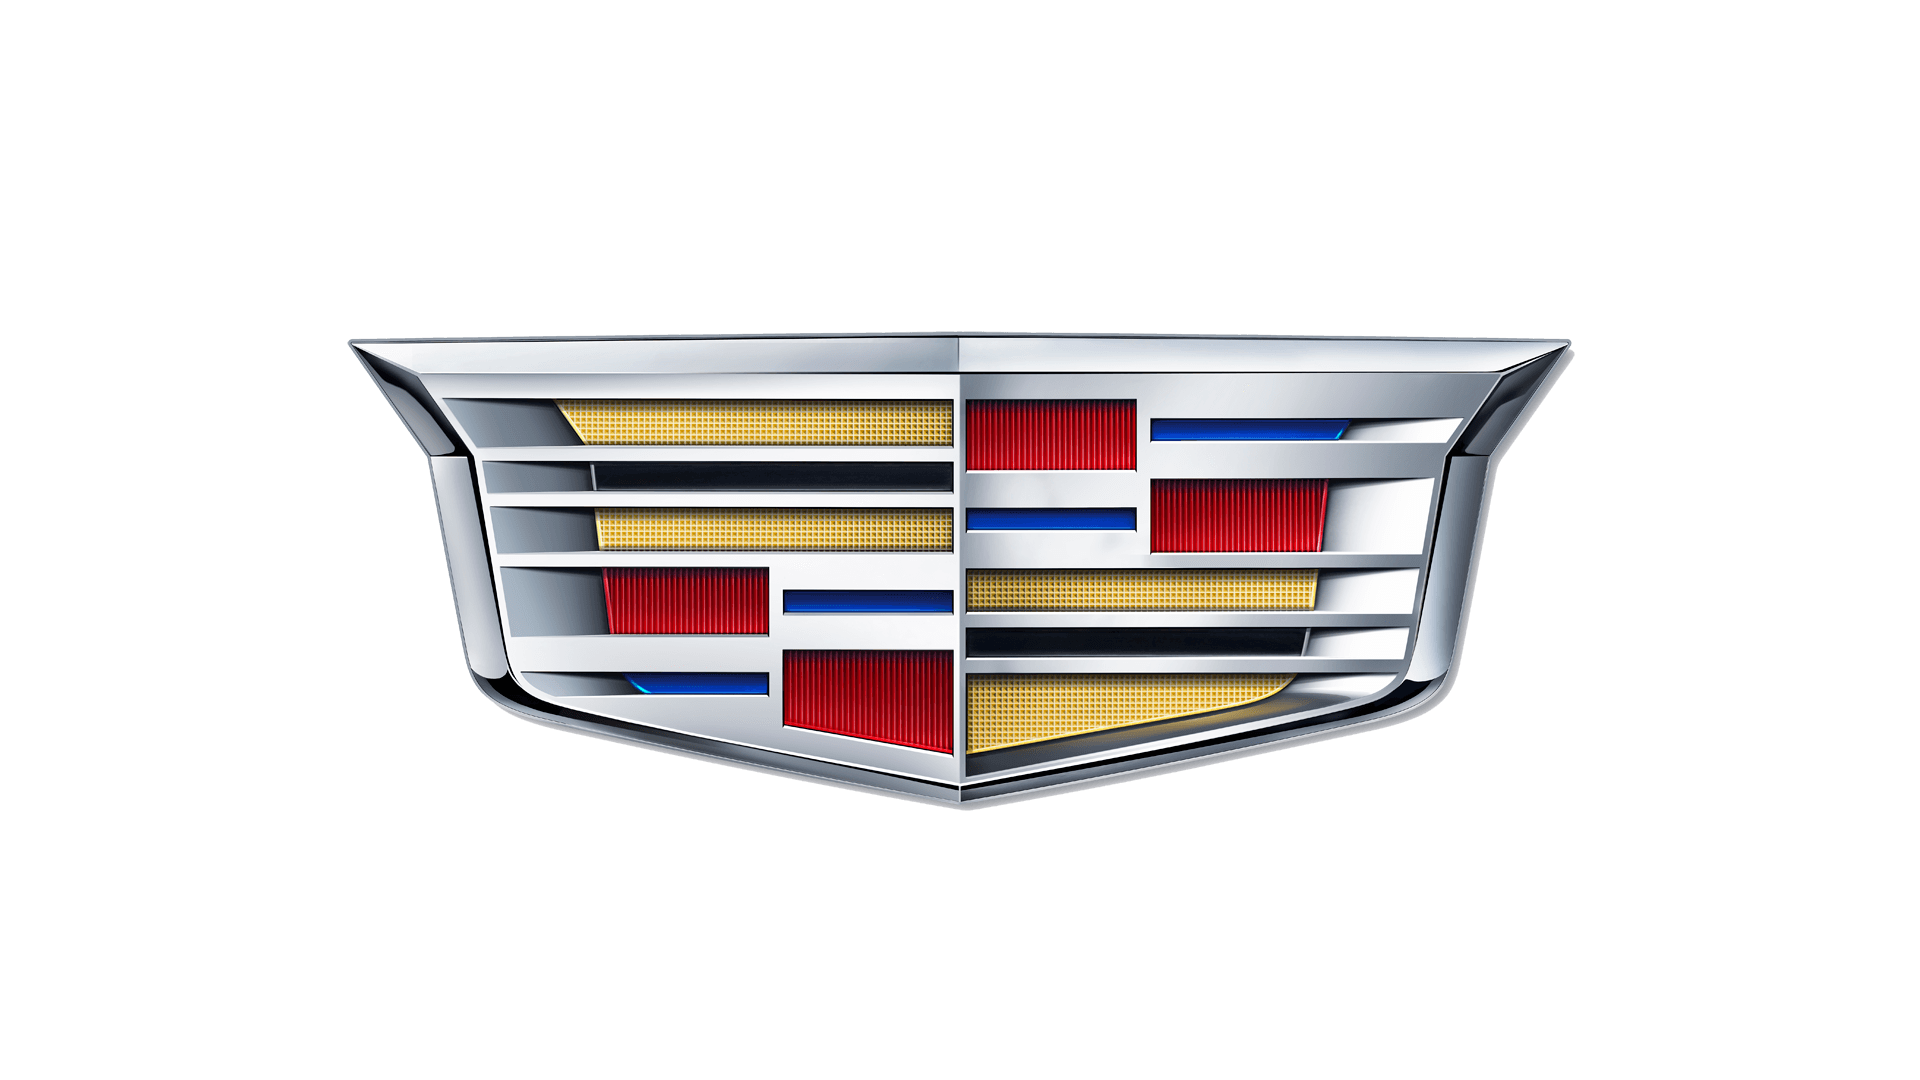 Car Logo Cadillac transparent PNG.